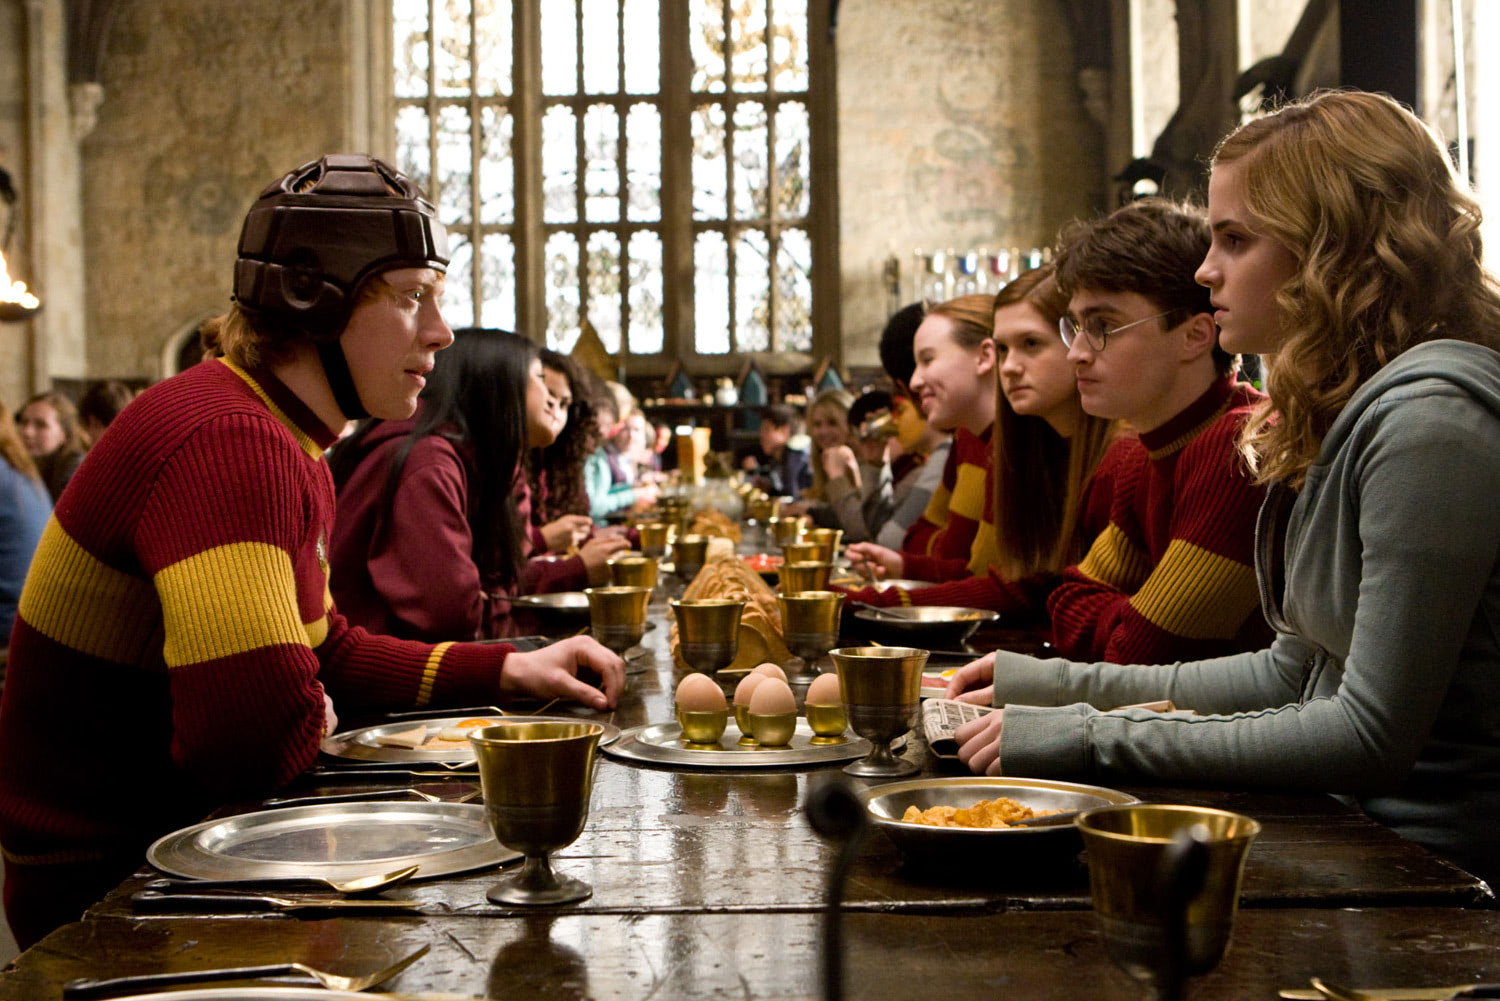 Breakfast before Quidditch